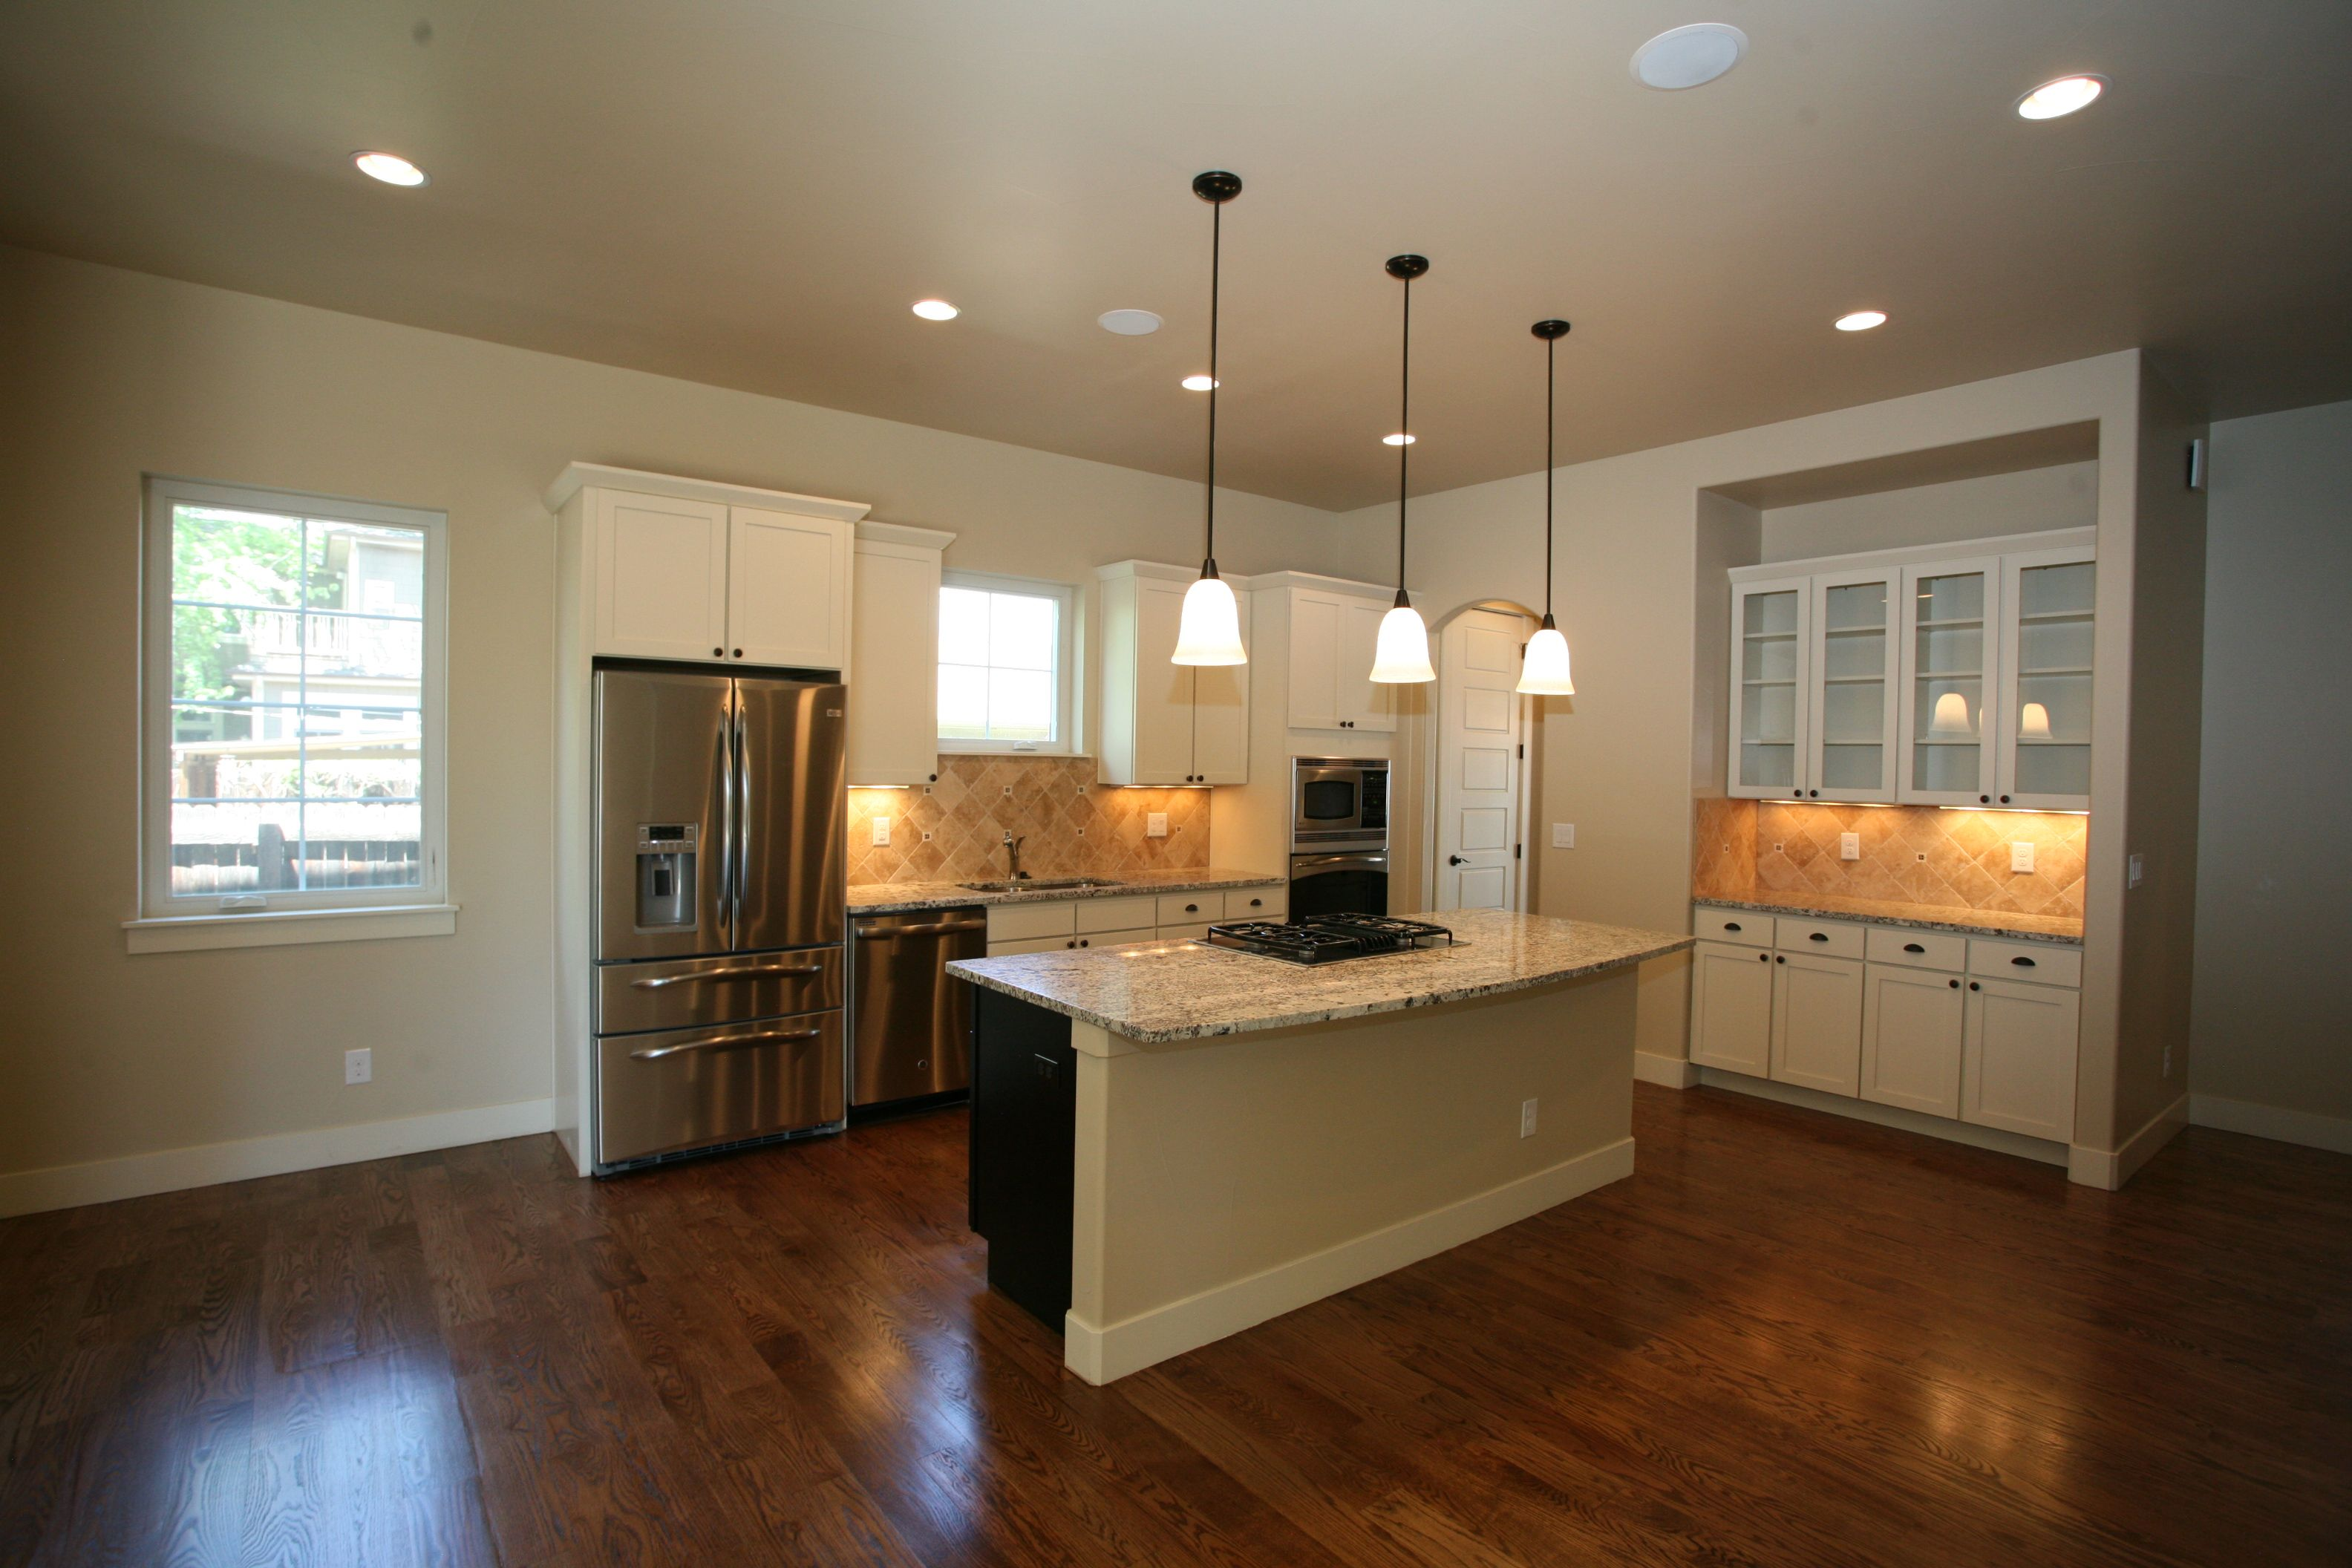 Etonnant Custom Kitchen Design Featuring Mid Size Island And Glass Cabinets. Three  Pendant Light Design